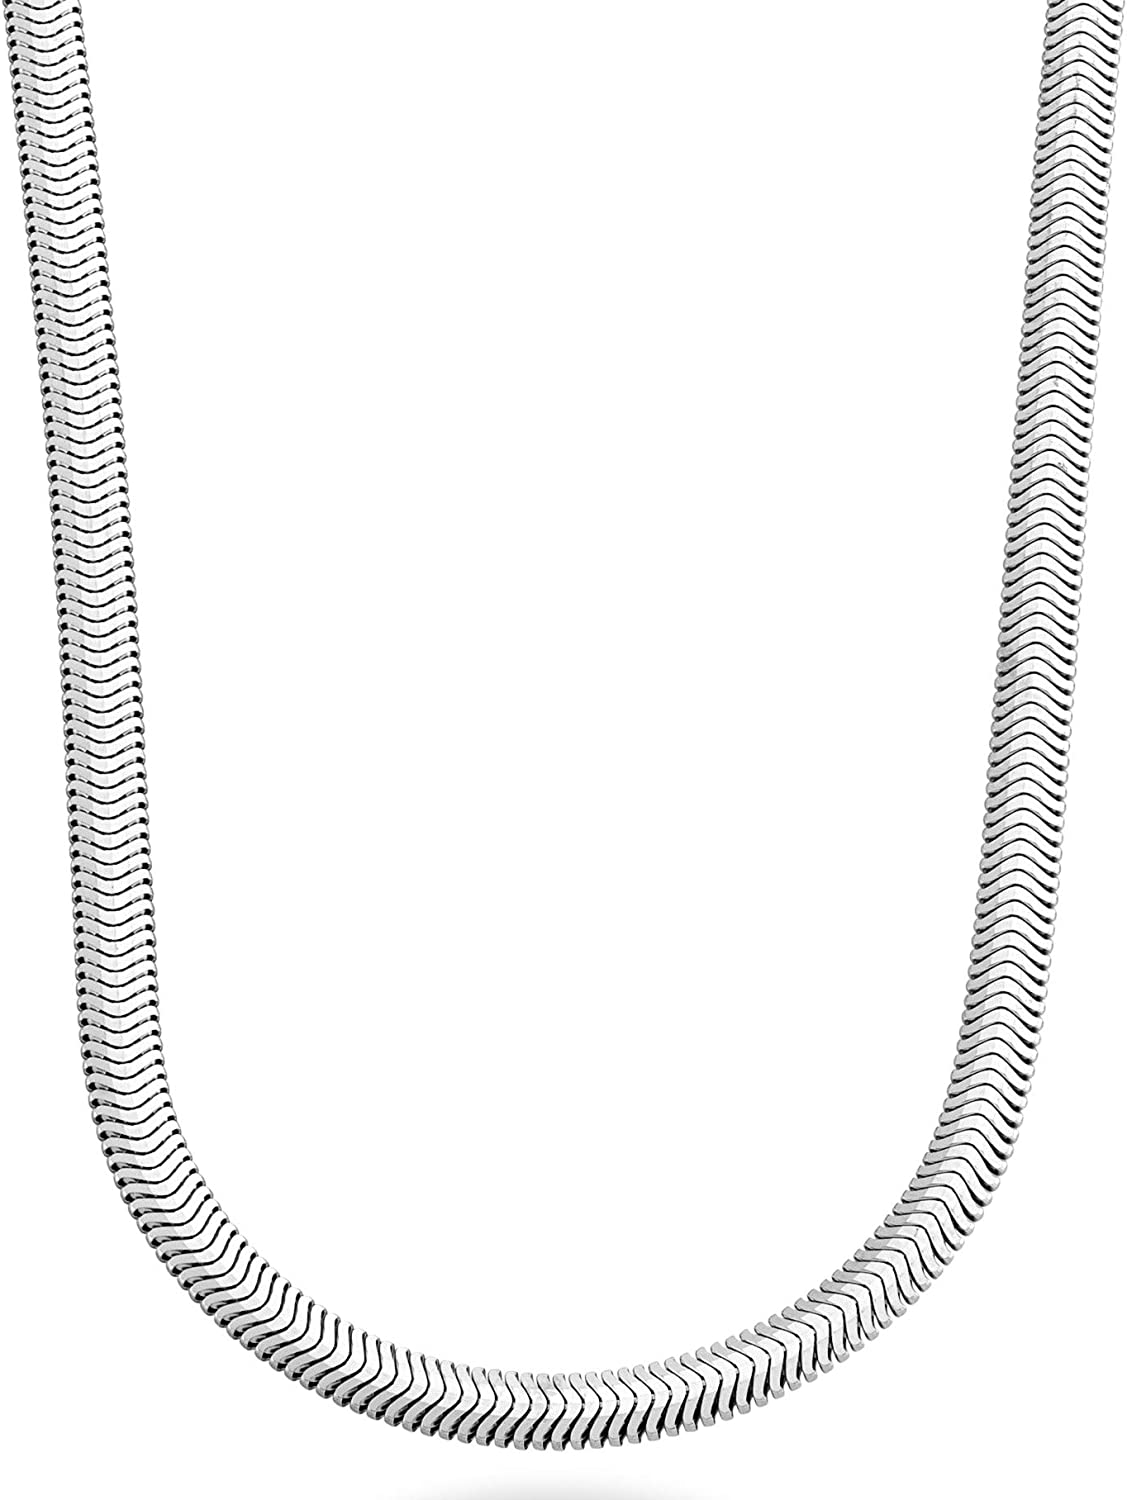 Miabella 925 Sterling Silver Italian 4mm Solid Diamond-Cut Flat Snake Dome Herringbone Chain Link Necklace for Women Men 16, 18, 20, 22, 24 Inch Made in Italy